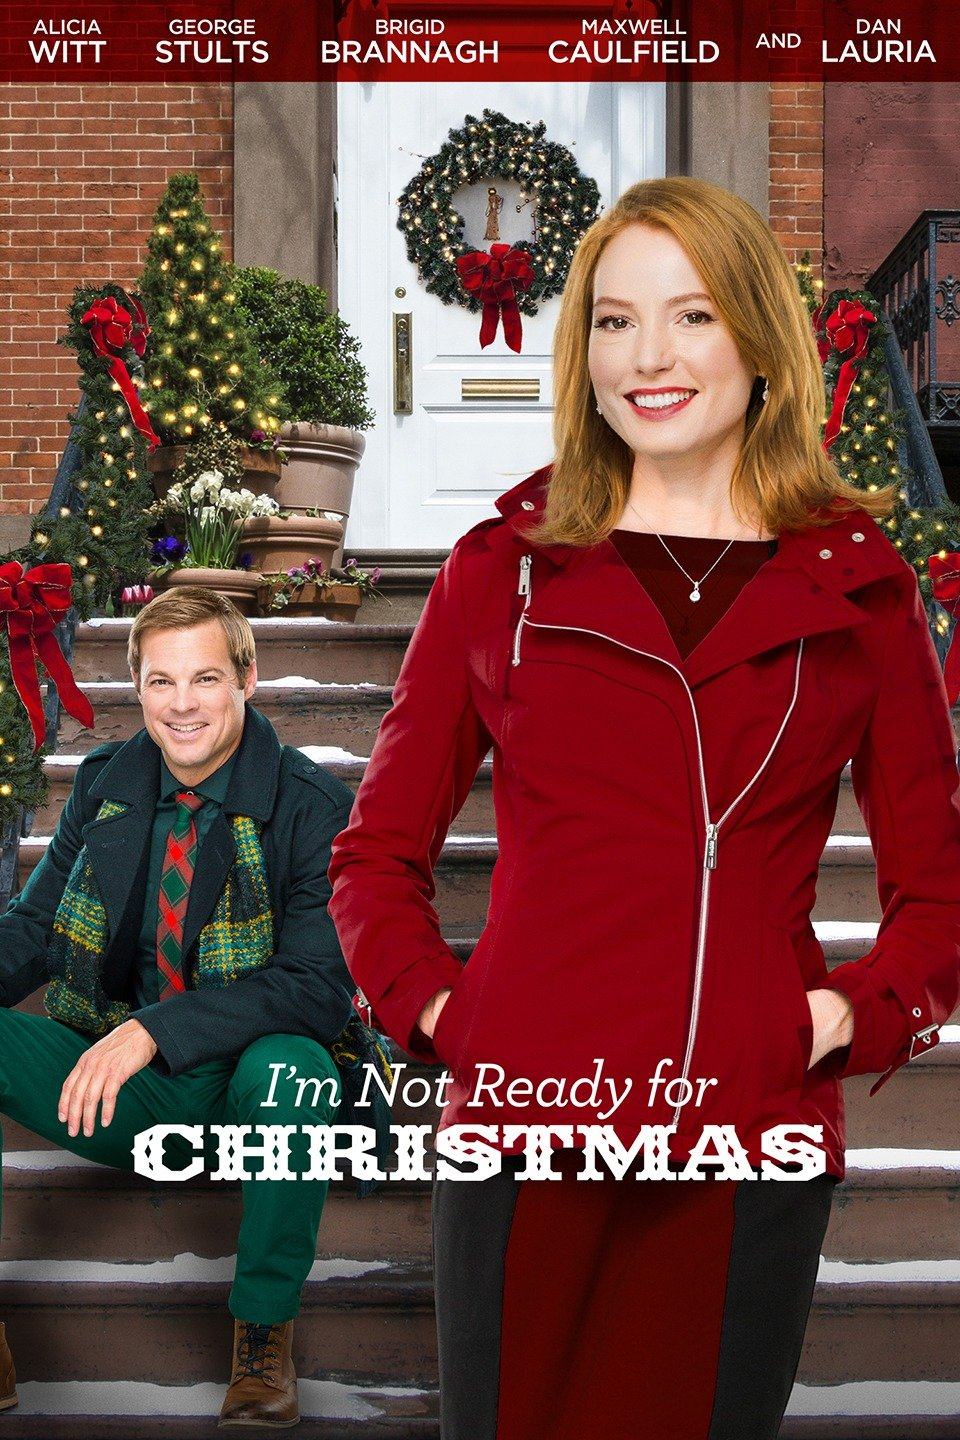 I'm Not Ready For Christmas (2015)